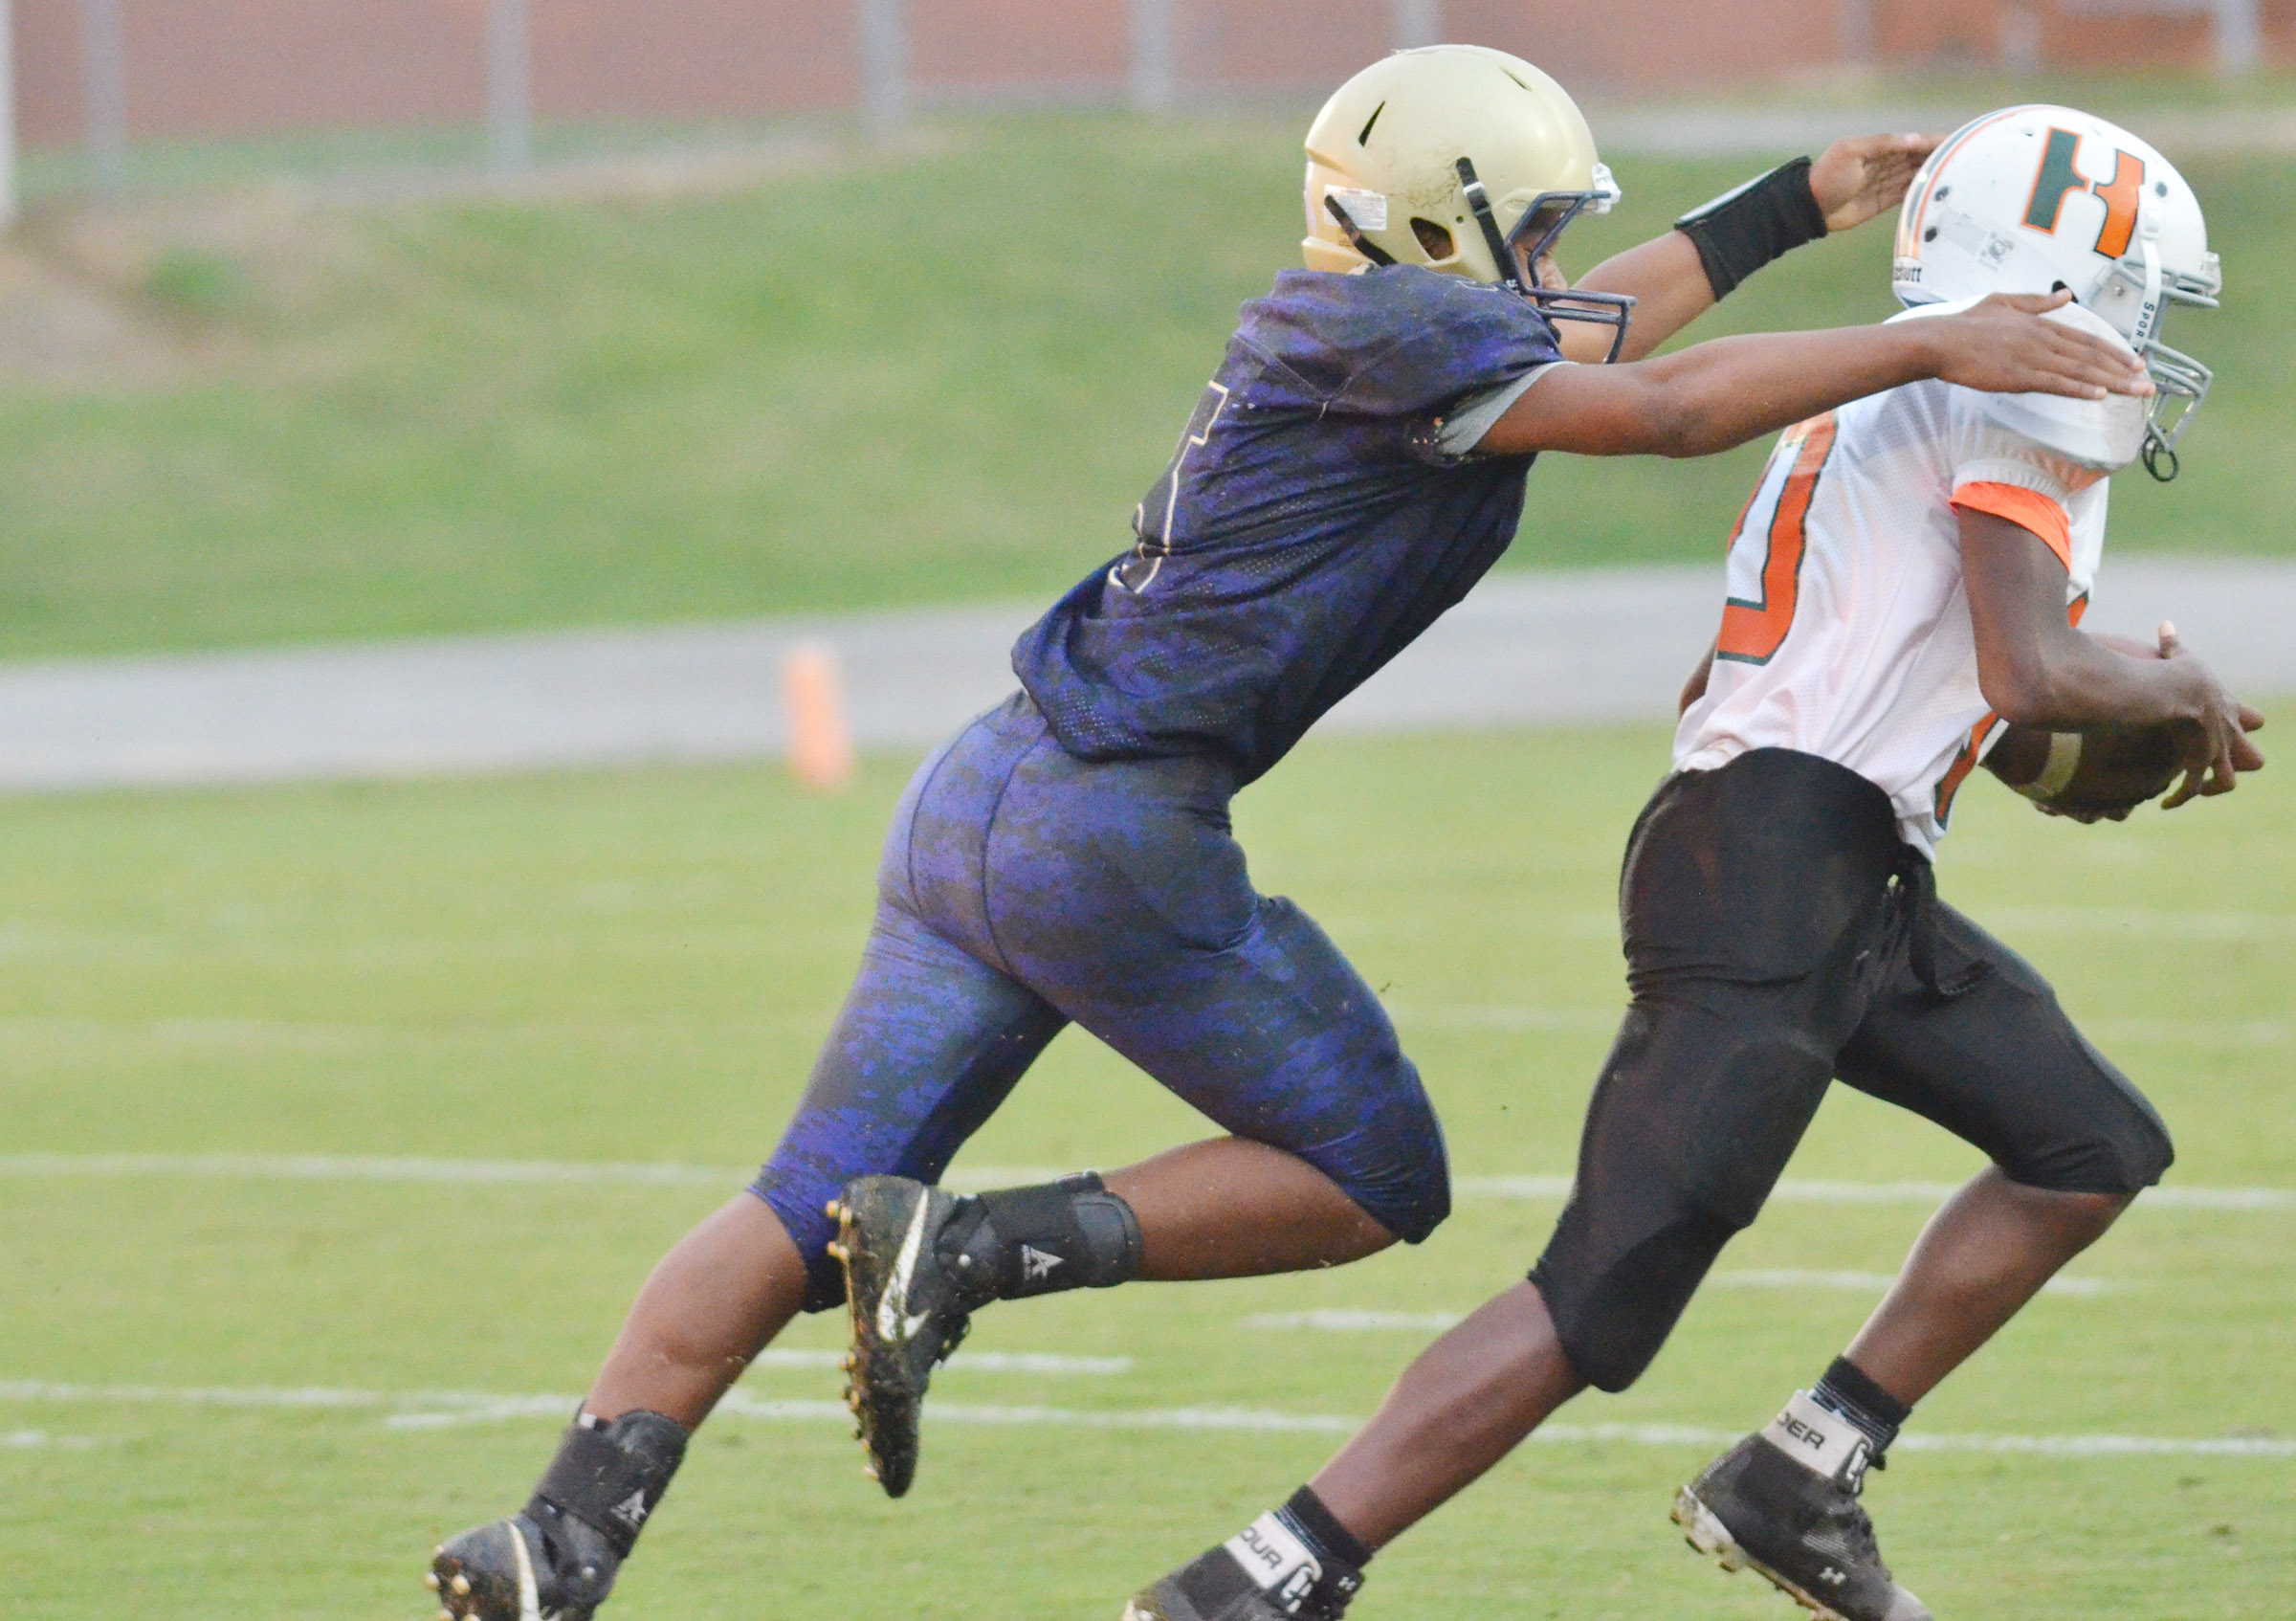 CMS seventh-grader Deondre Weathers tackles.